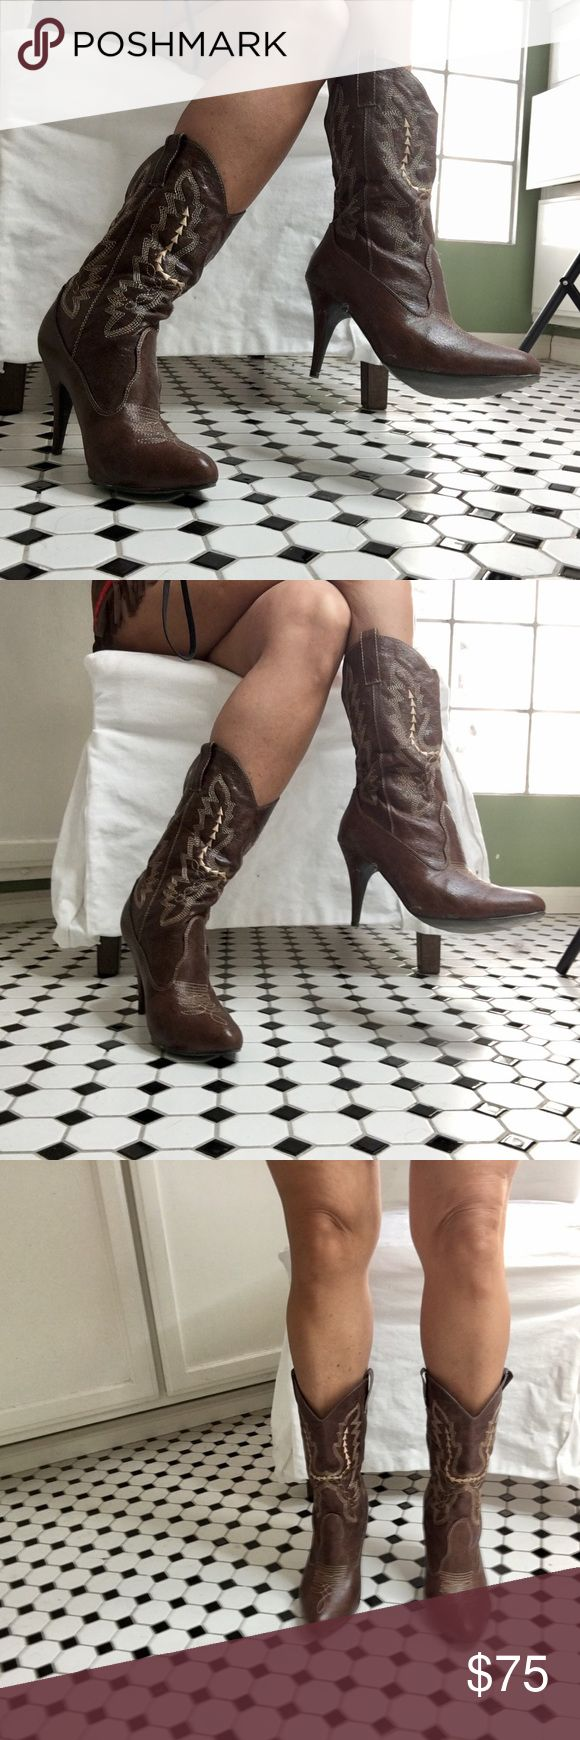 "Brown embroidered women's 3"" heel cowboy boots Never worn, look great with boho dressing or the cowgirl costume in my shop. Sz 9, 3"" heel, faux leather. Shoes Heeled Boots"